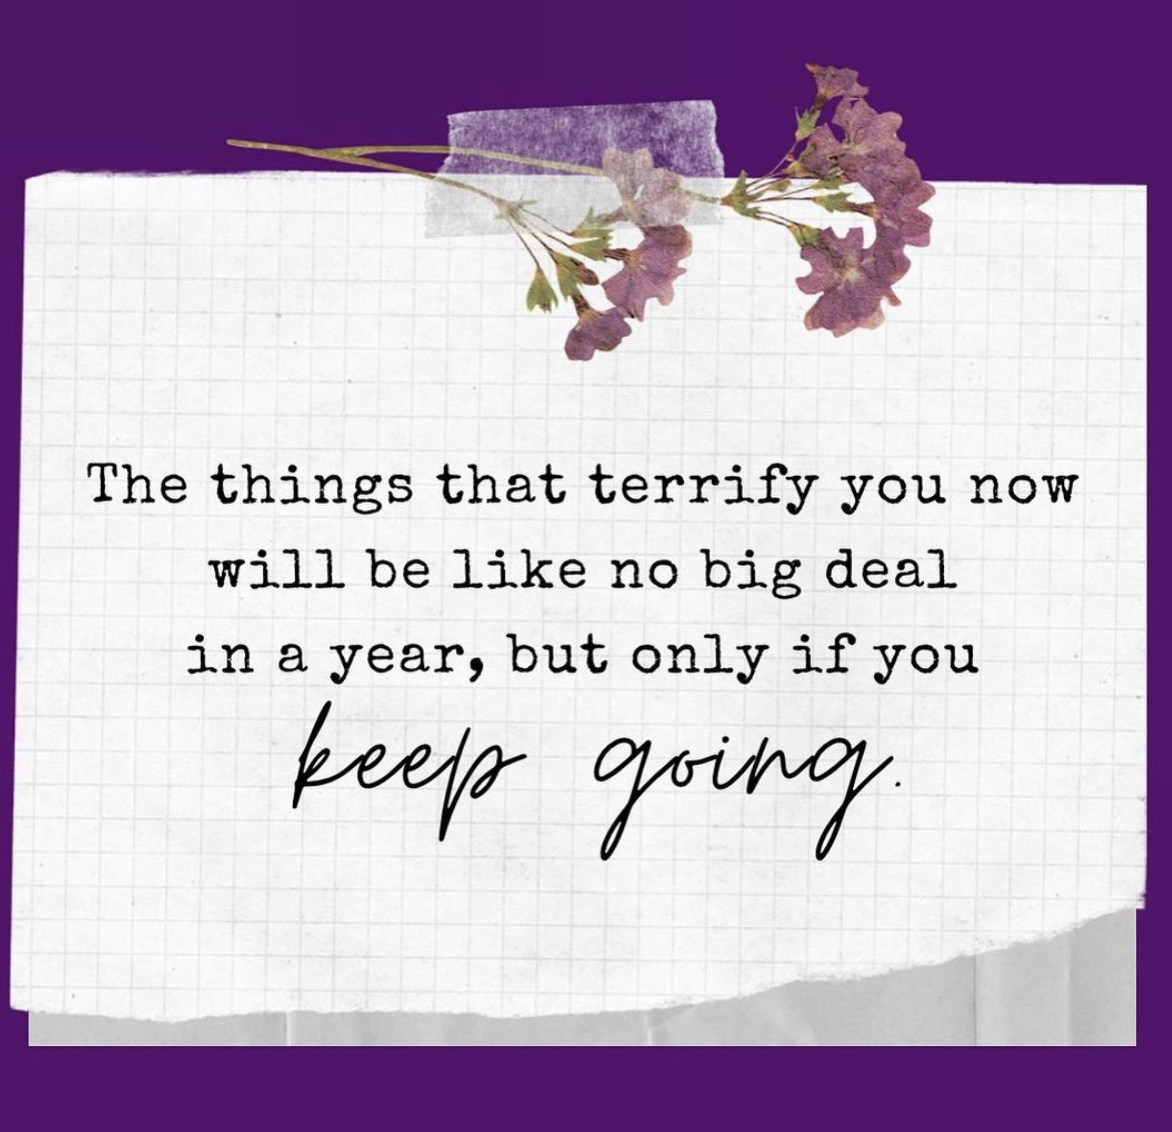 [Image] The things that terrify you now will be like no big deal in a year, but only if you keep going.